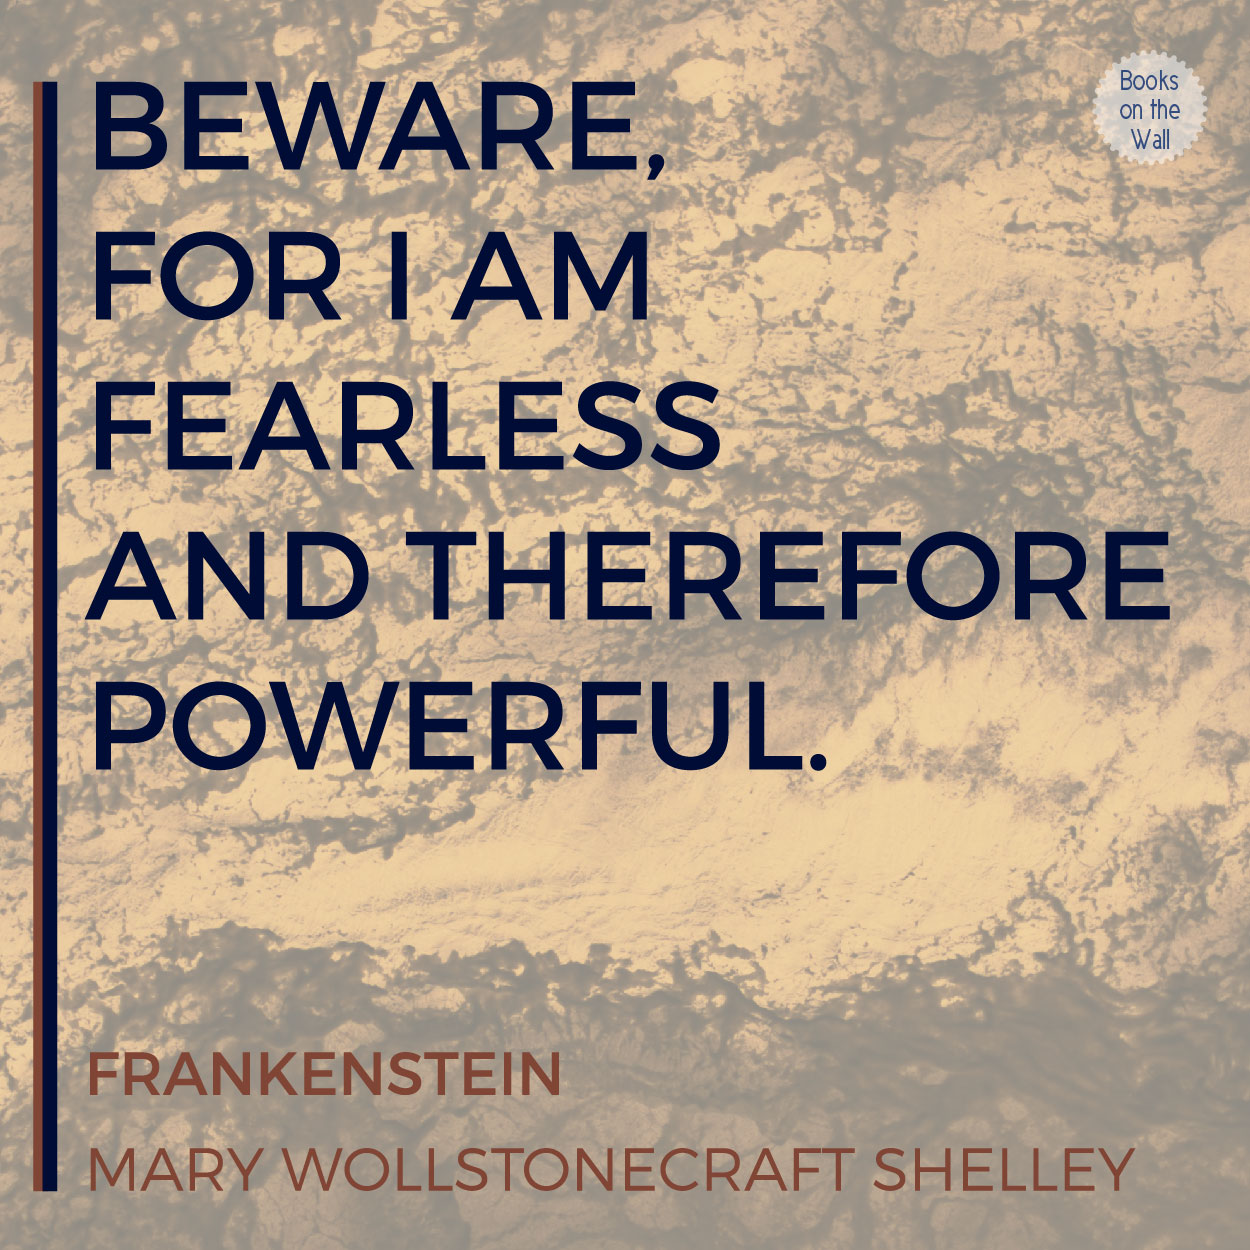 a literary analysis of the creature in frankenstein by mary shelley Close reading analysis in a passage of mary shelley's frankenstein, certain literary devices - such as sentence structure, diction, imagery, and concrete detail - are used to convey a peaceful, yet impossible tone.